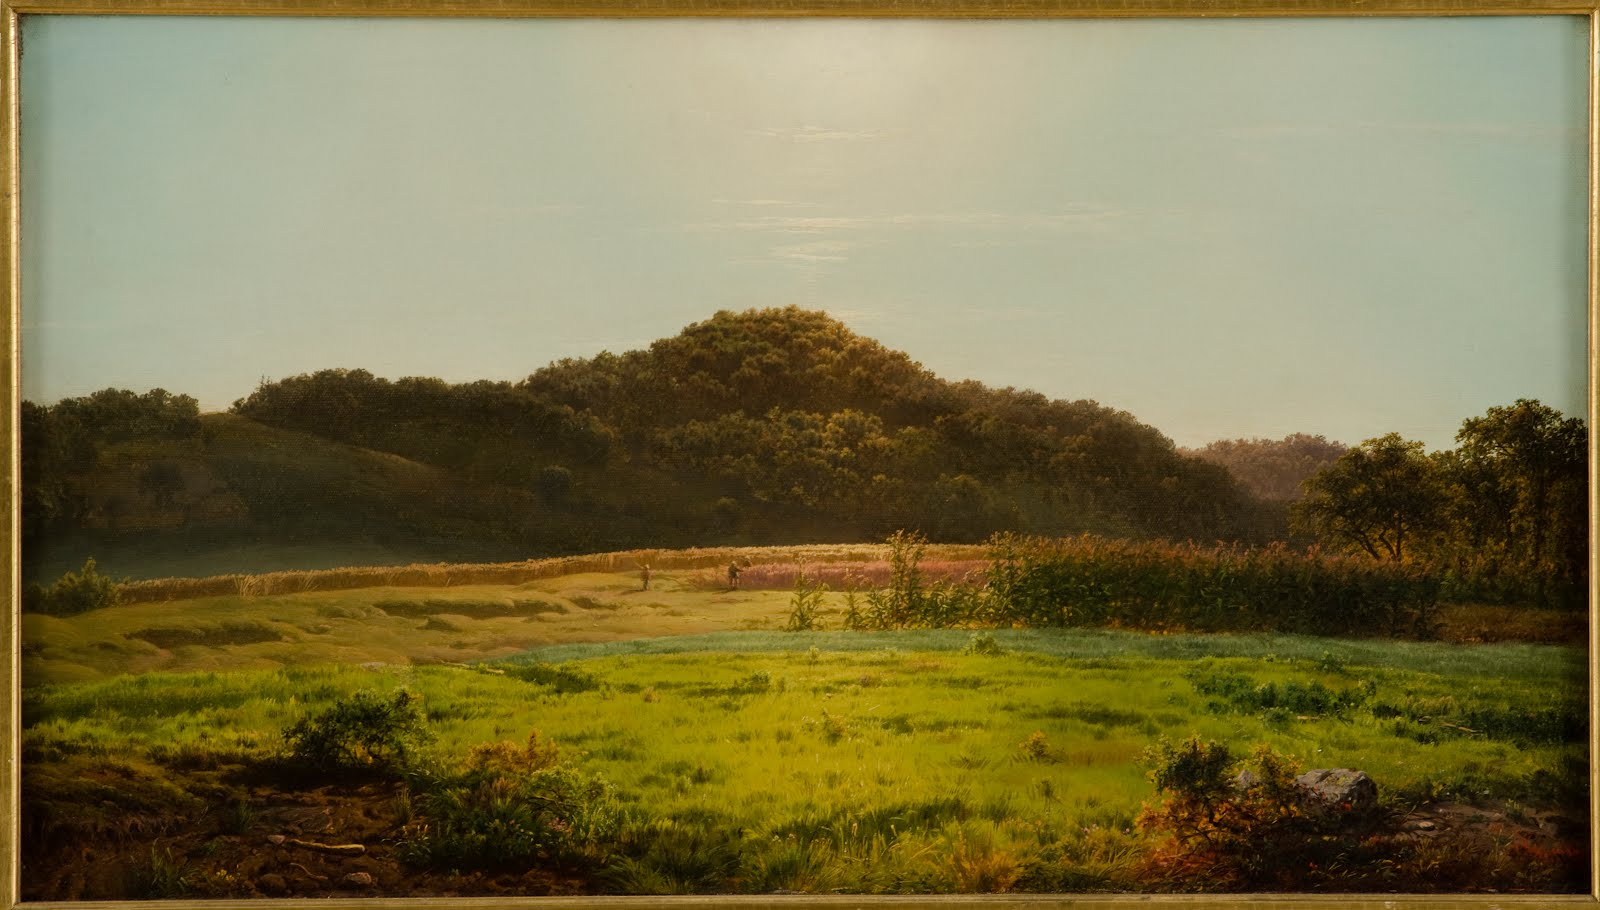 Louis Remy Mignot, View Across the Valley at Pierstown, c. 1858